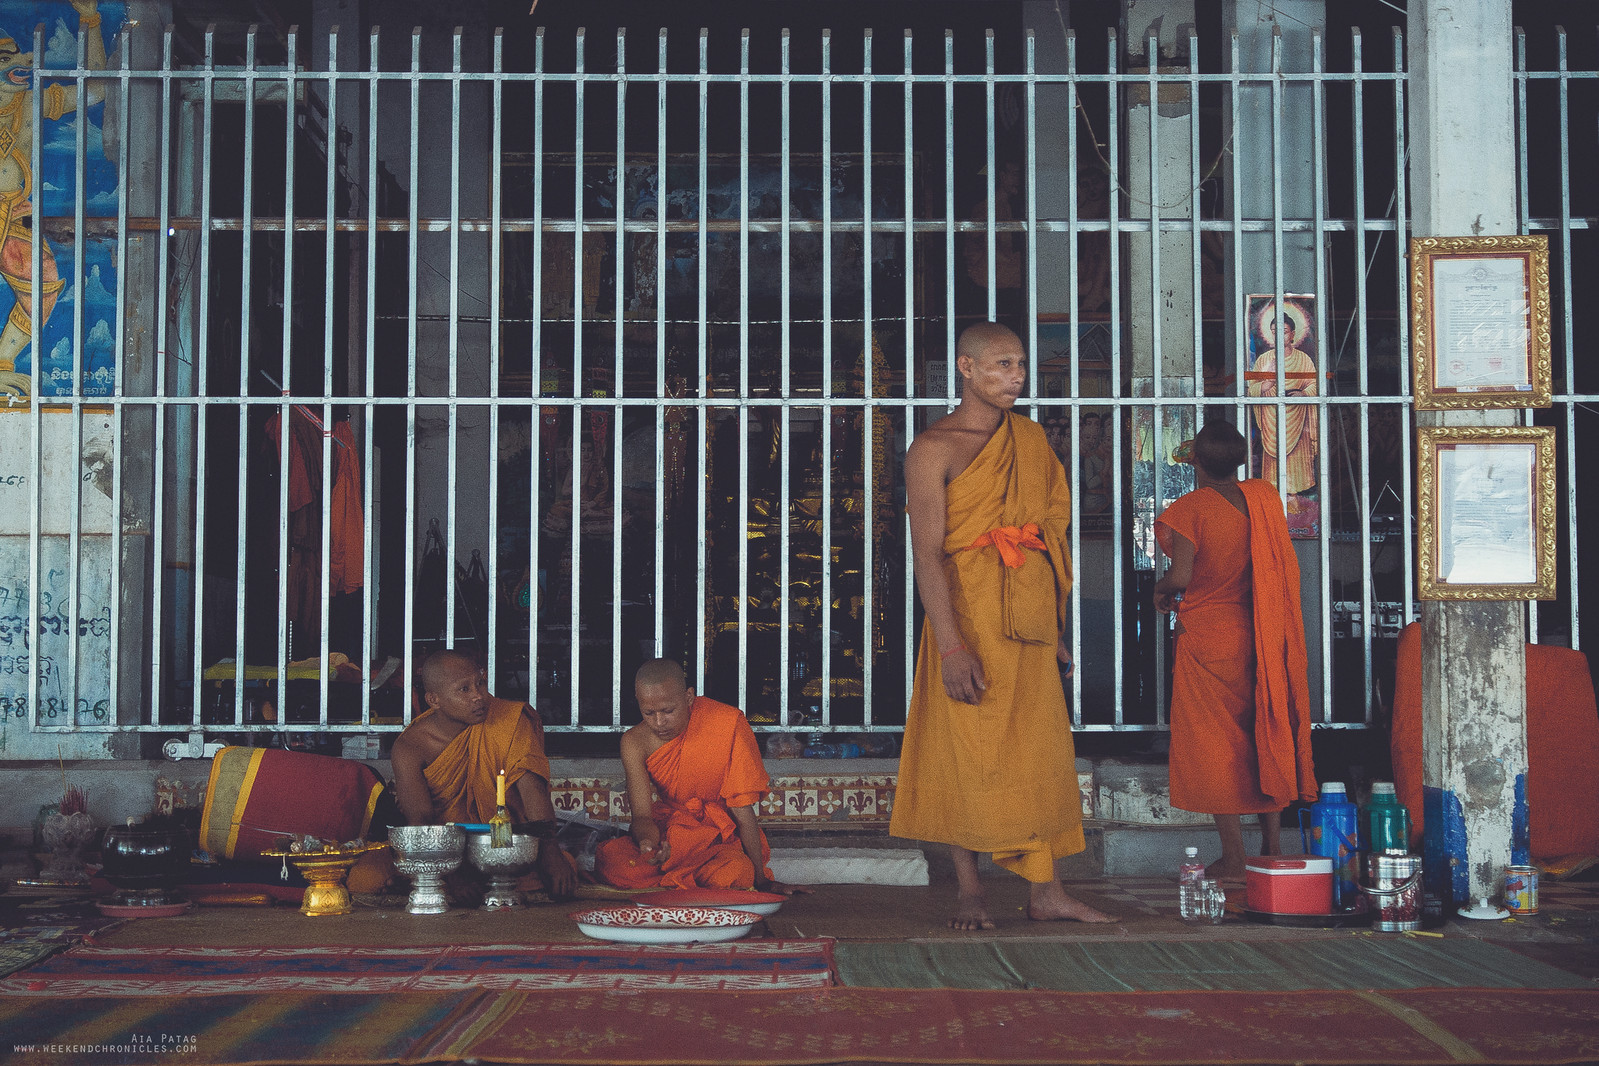 Monks resting after a long day of work